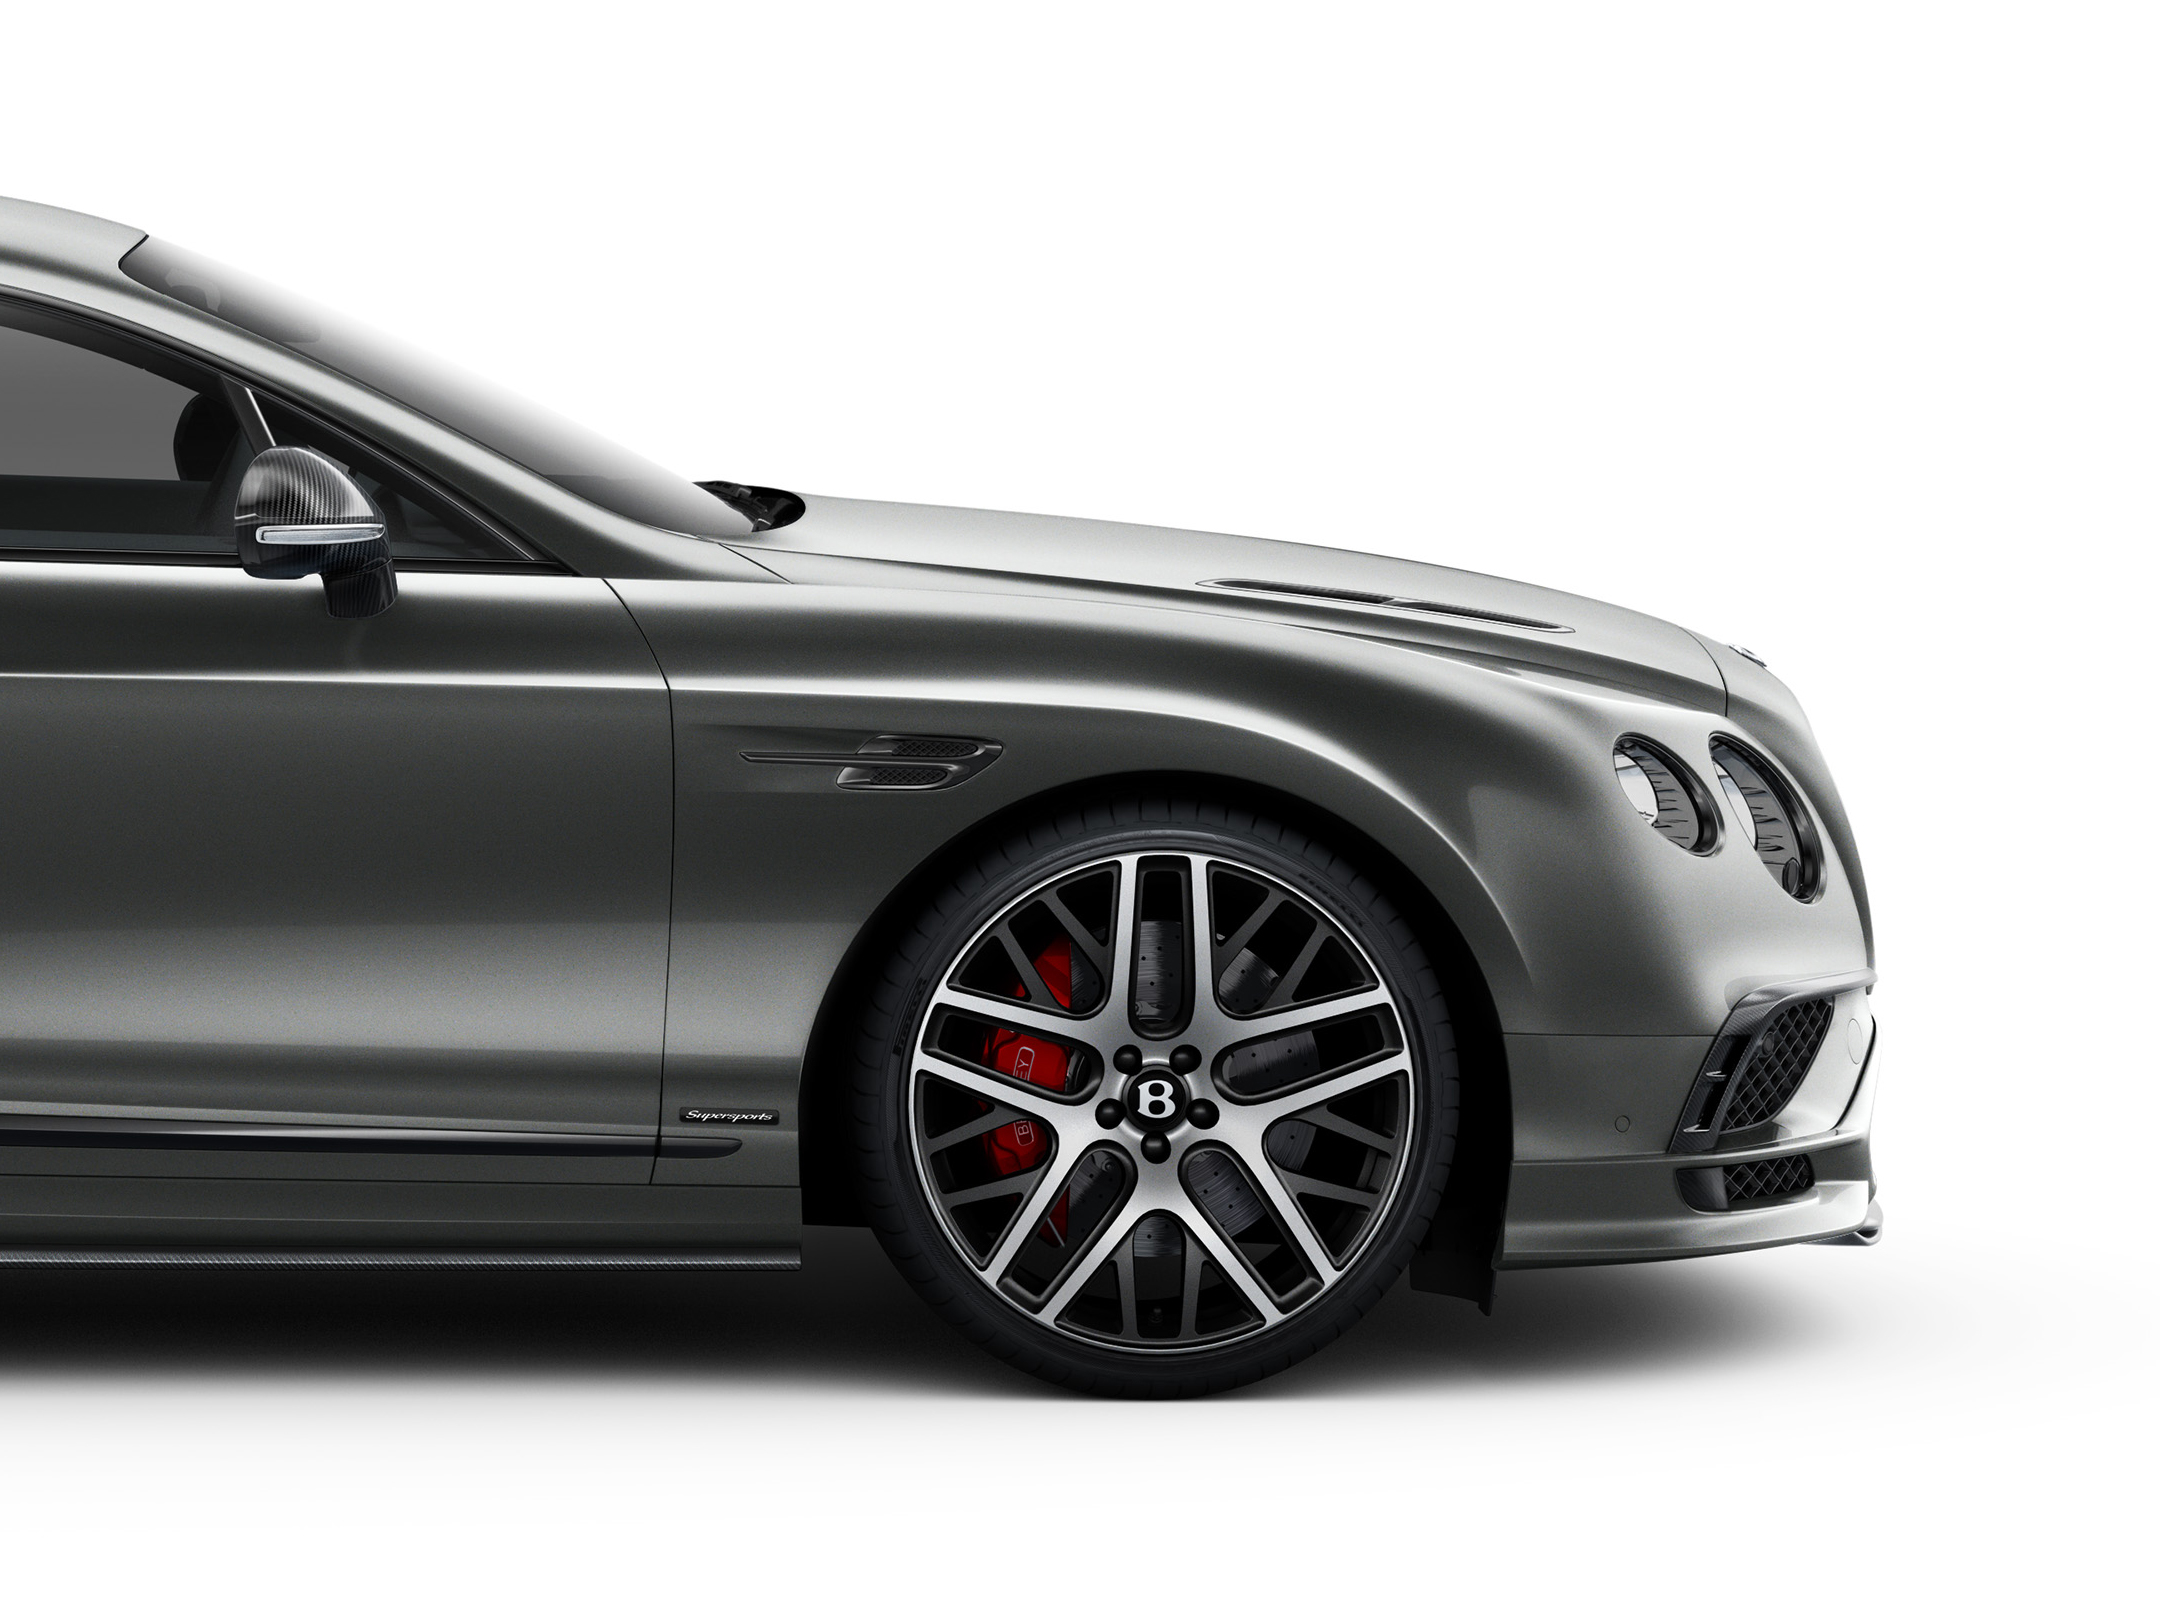 Continental Supersports - 2017 - front wheel / roue avant